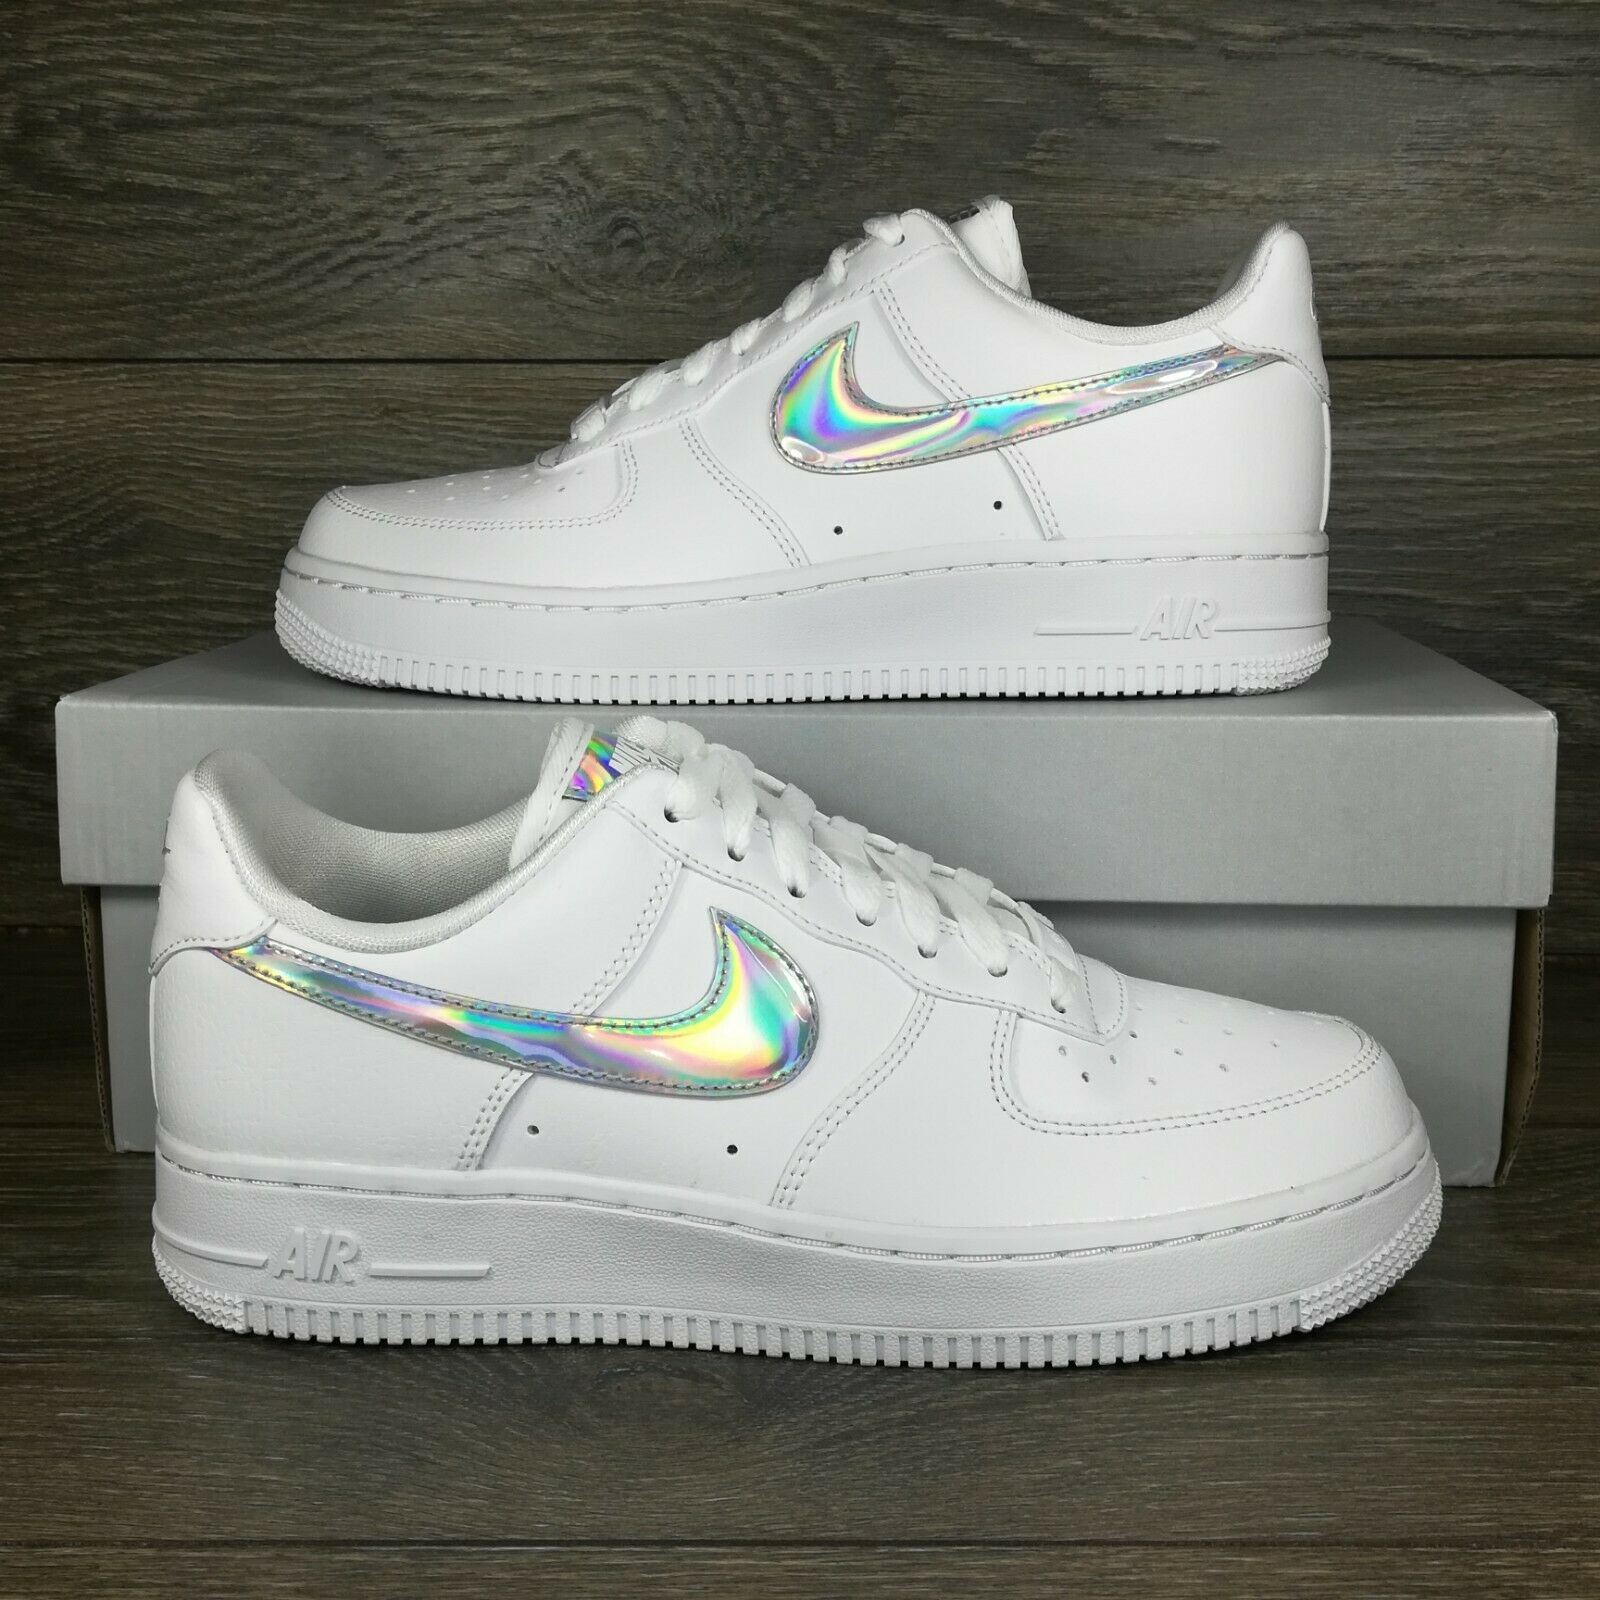 air force 1 swoosh pack white